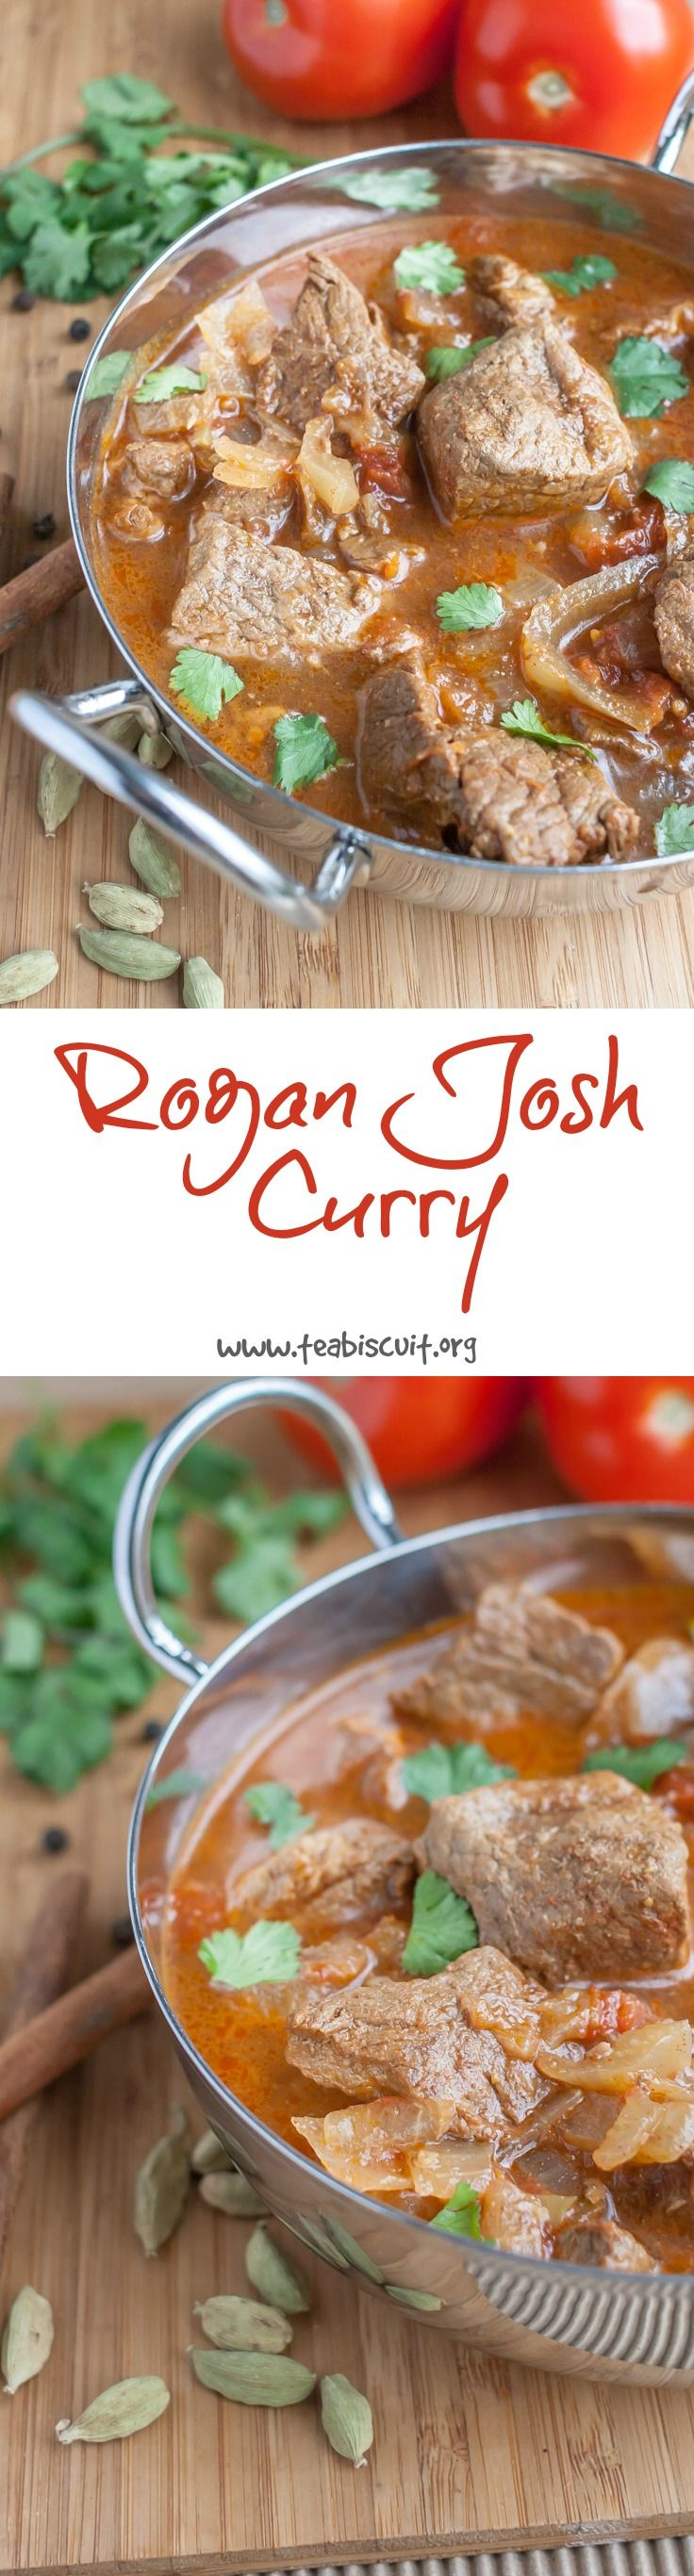 Delicious, easy Beef Rogan Josh Curry! Gluten free, dairy free and Paleo | www.teabiscuit.org